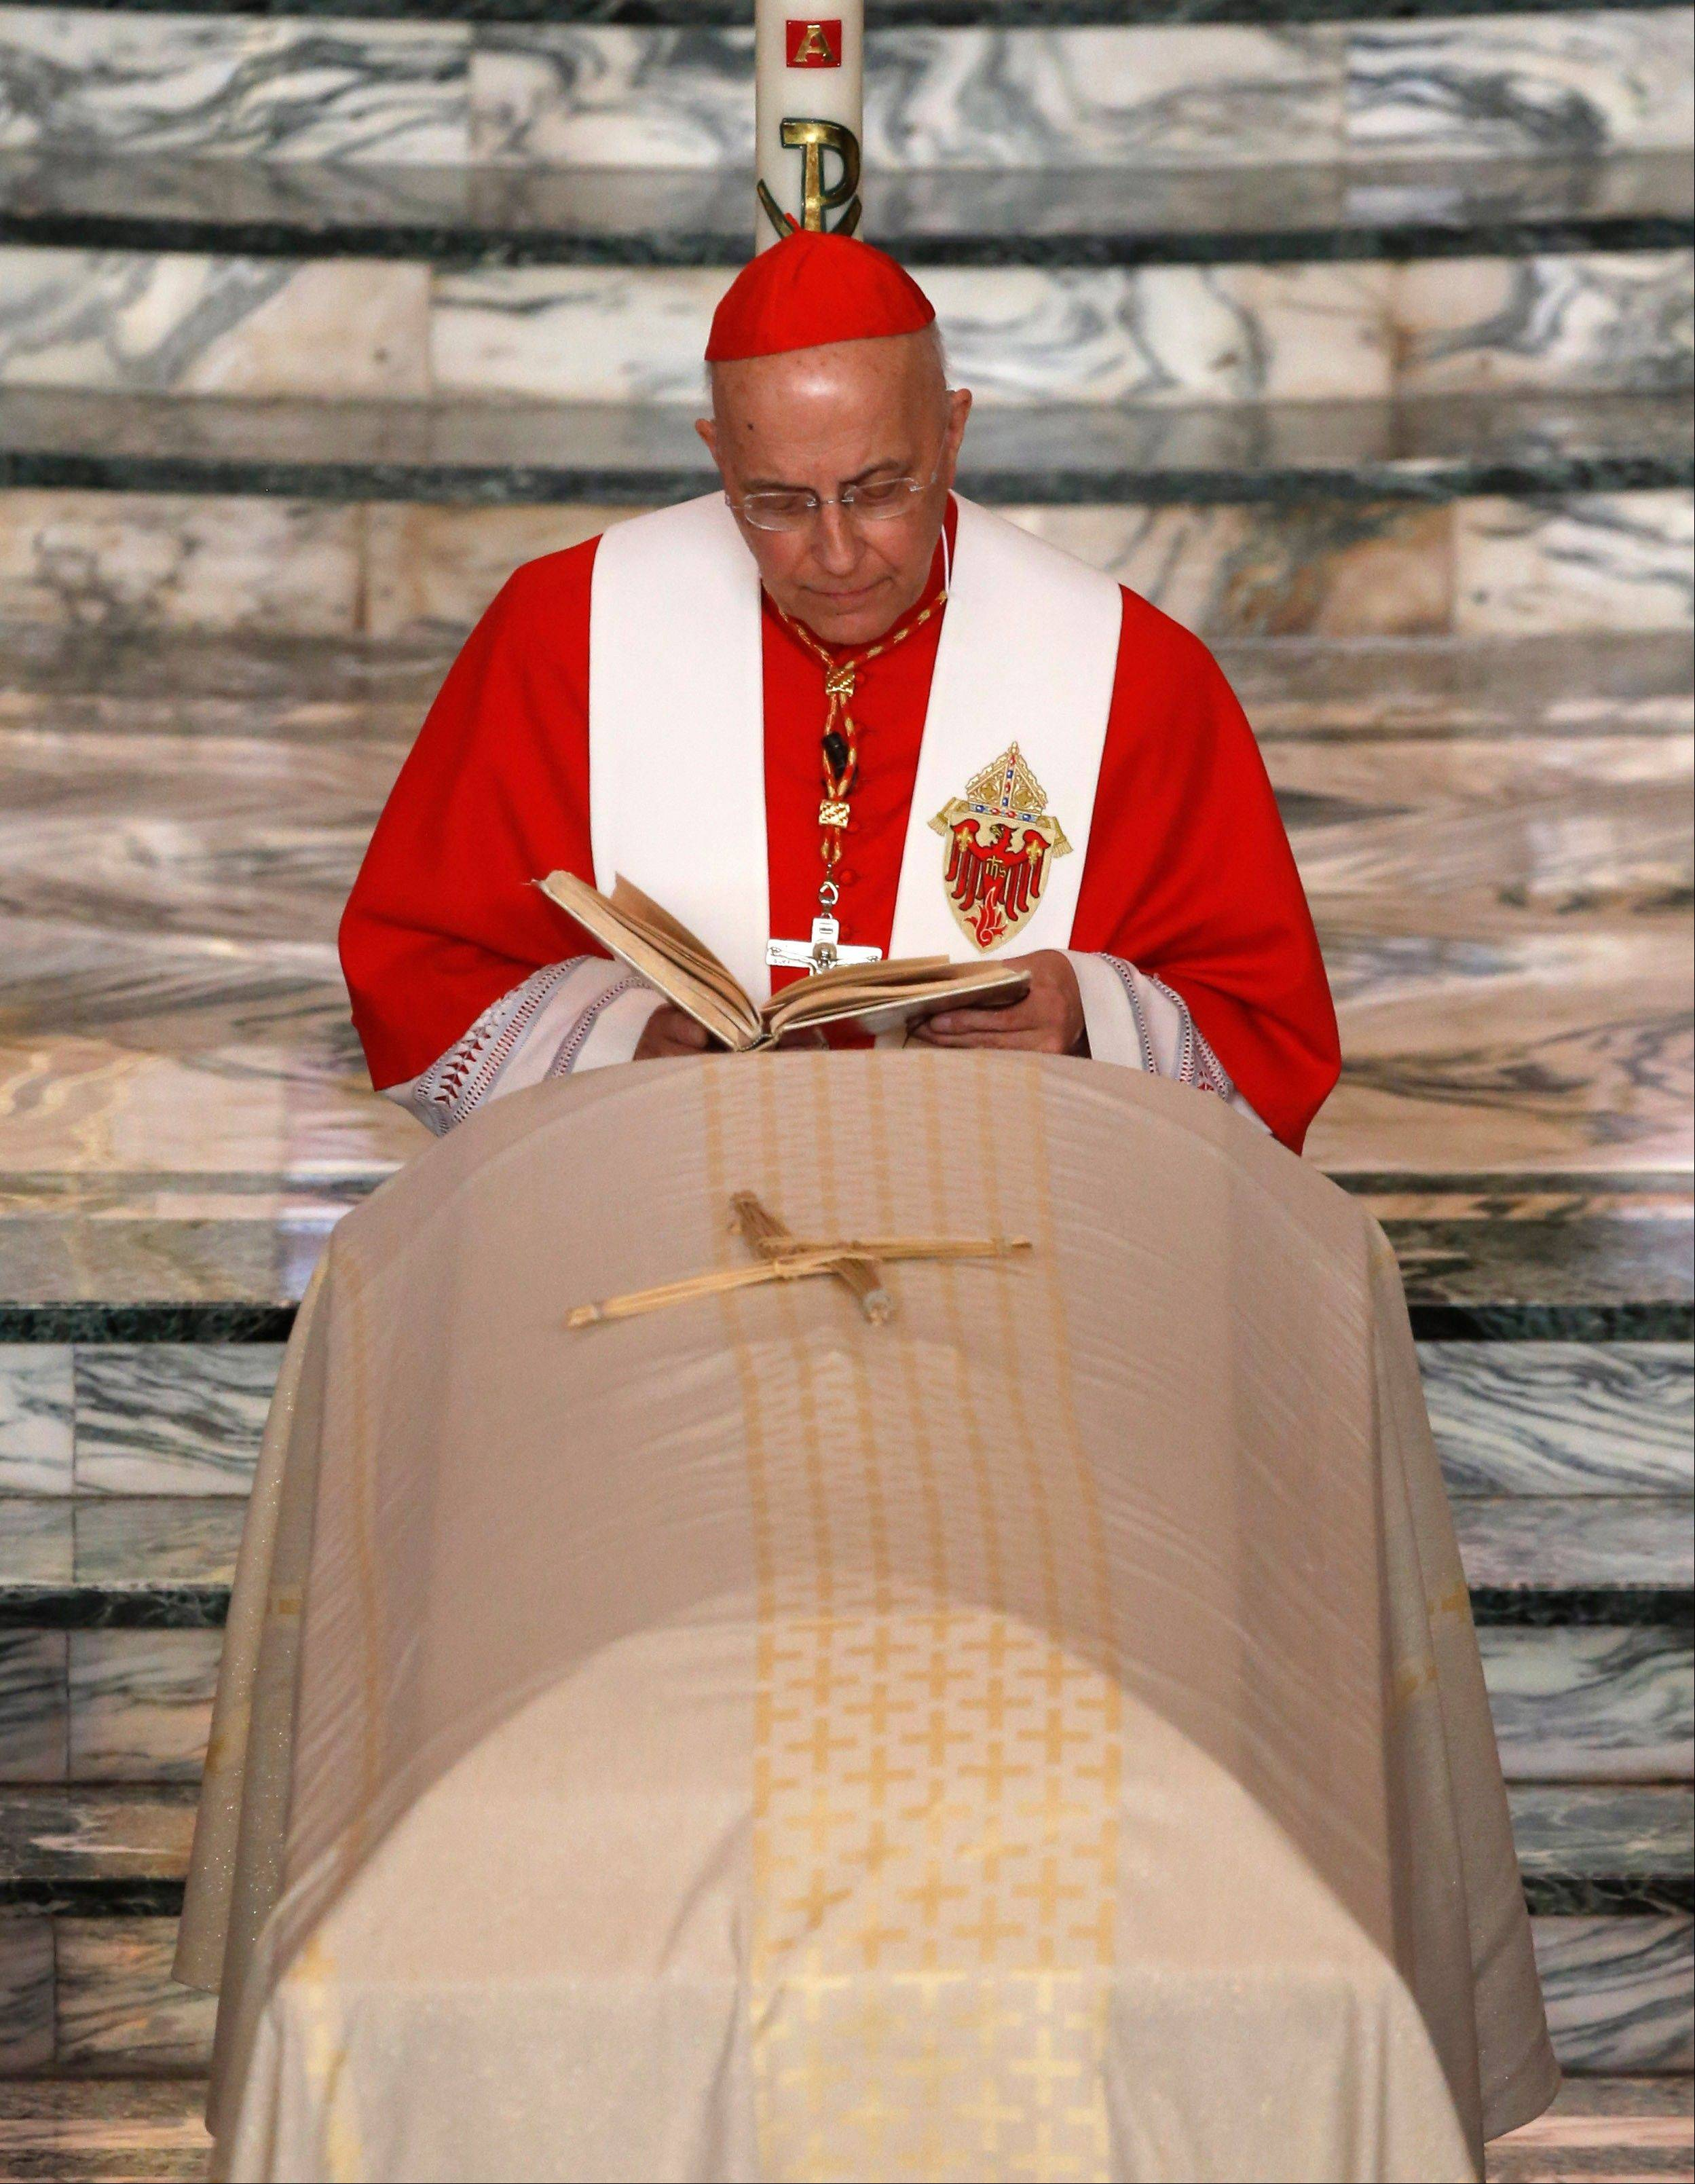 Francis Cardinal George presides over a funeral Mass for the Rev. Andrew Greeley at Christ The King Church Wednesday, June 5, 2013, in Chicago. Greeley, an outspoken priest and best-selling author died in his Chicago home last week he was 85.